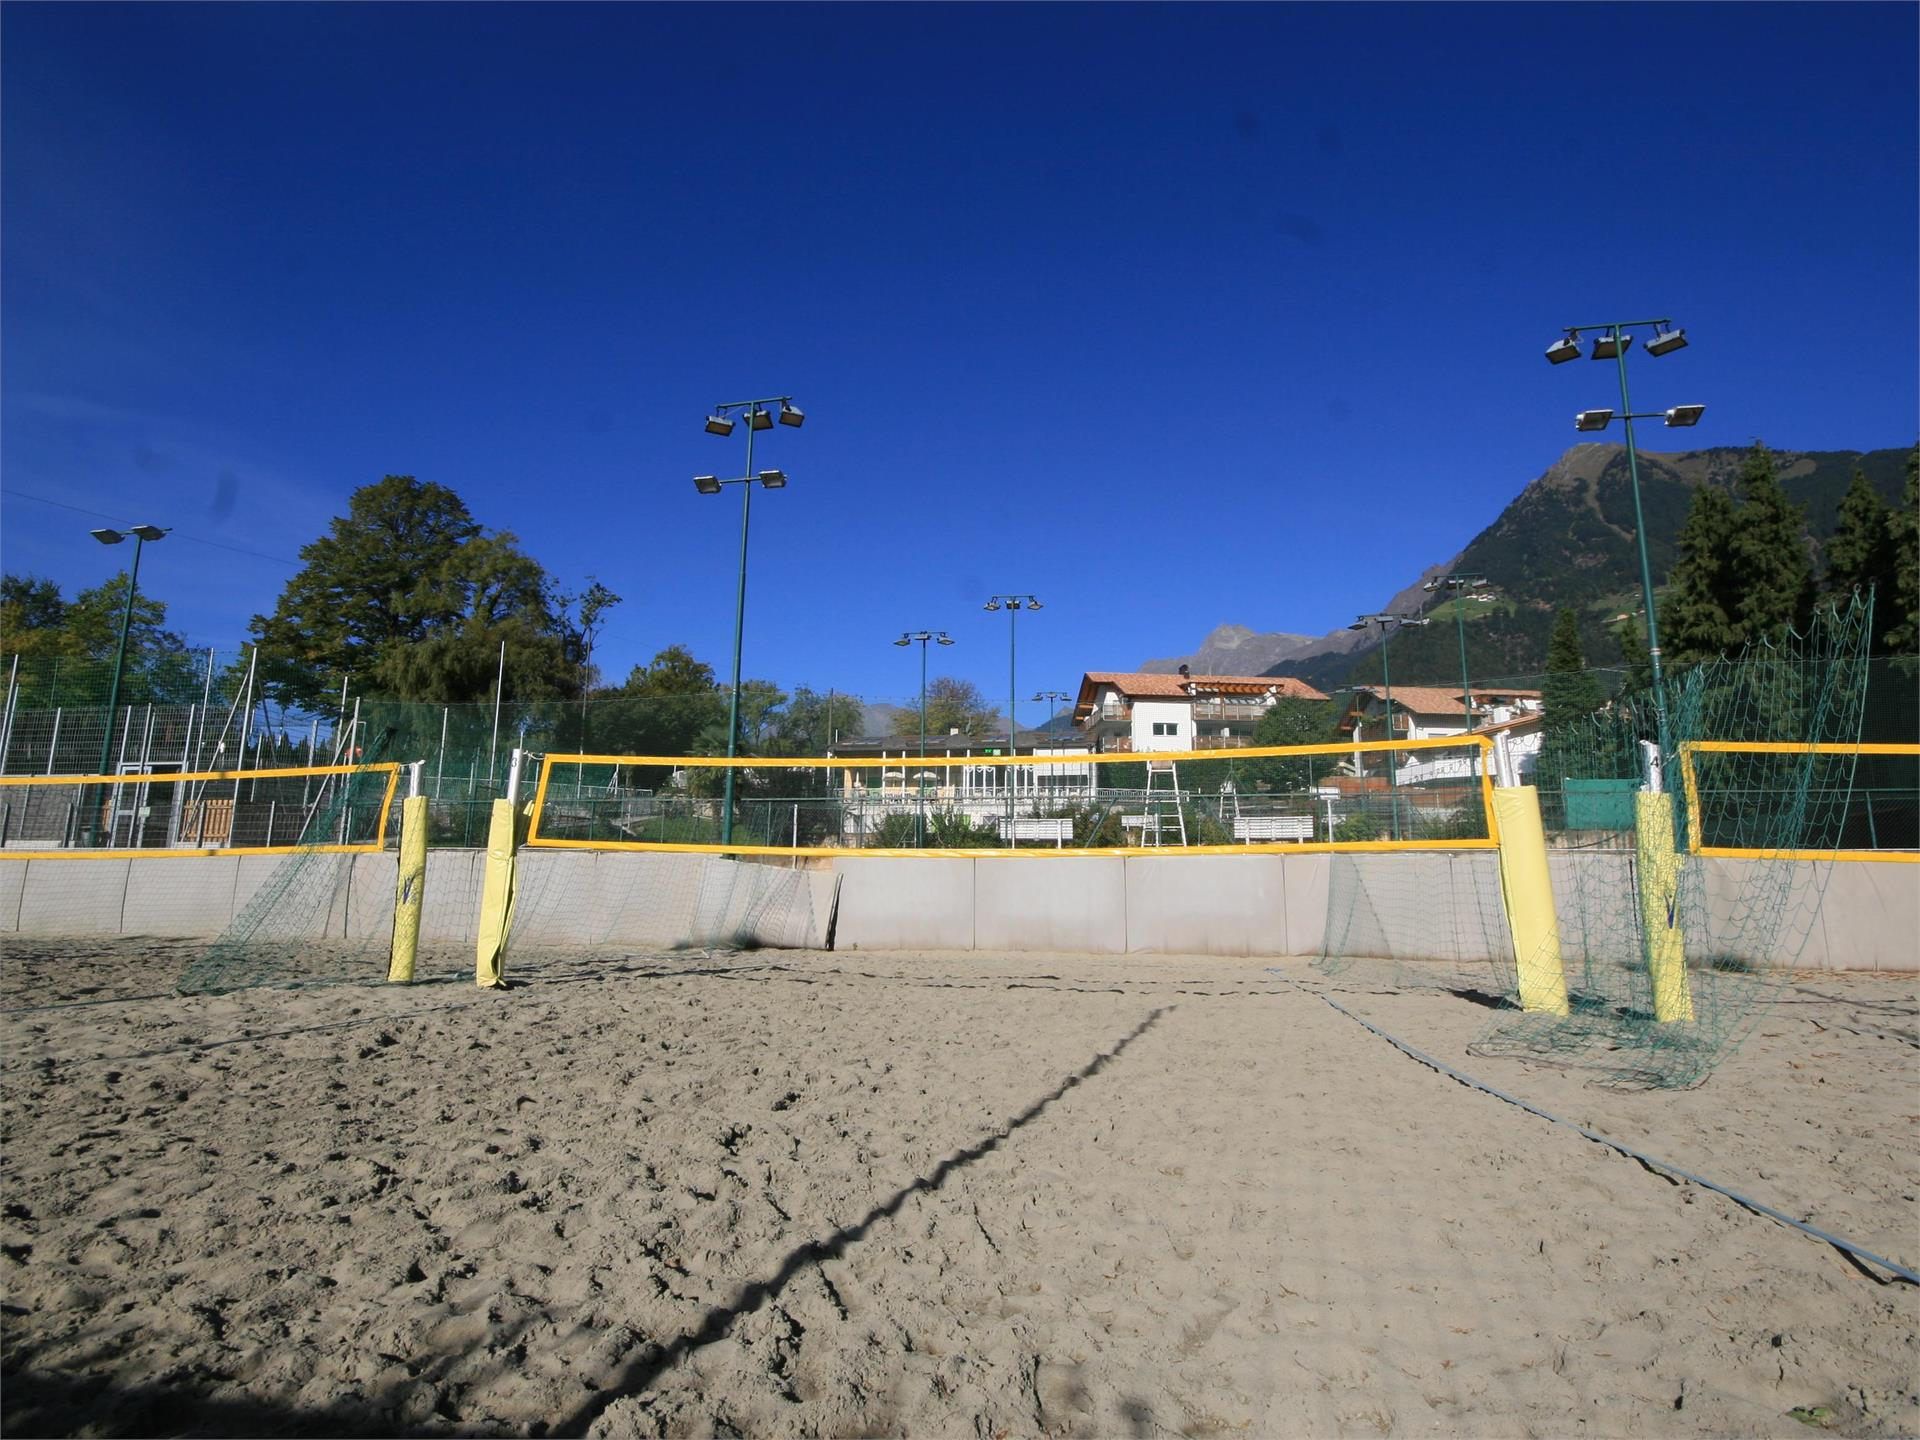 Beach Volleyball Center Dorf Tirol/Tirolo